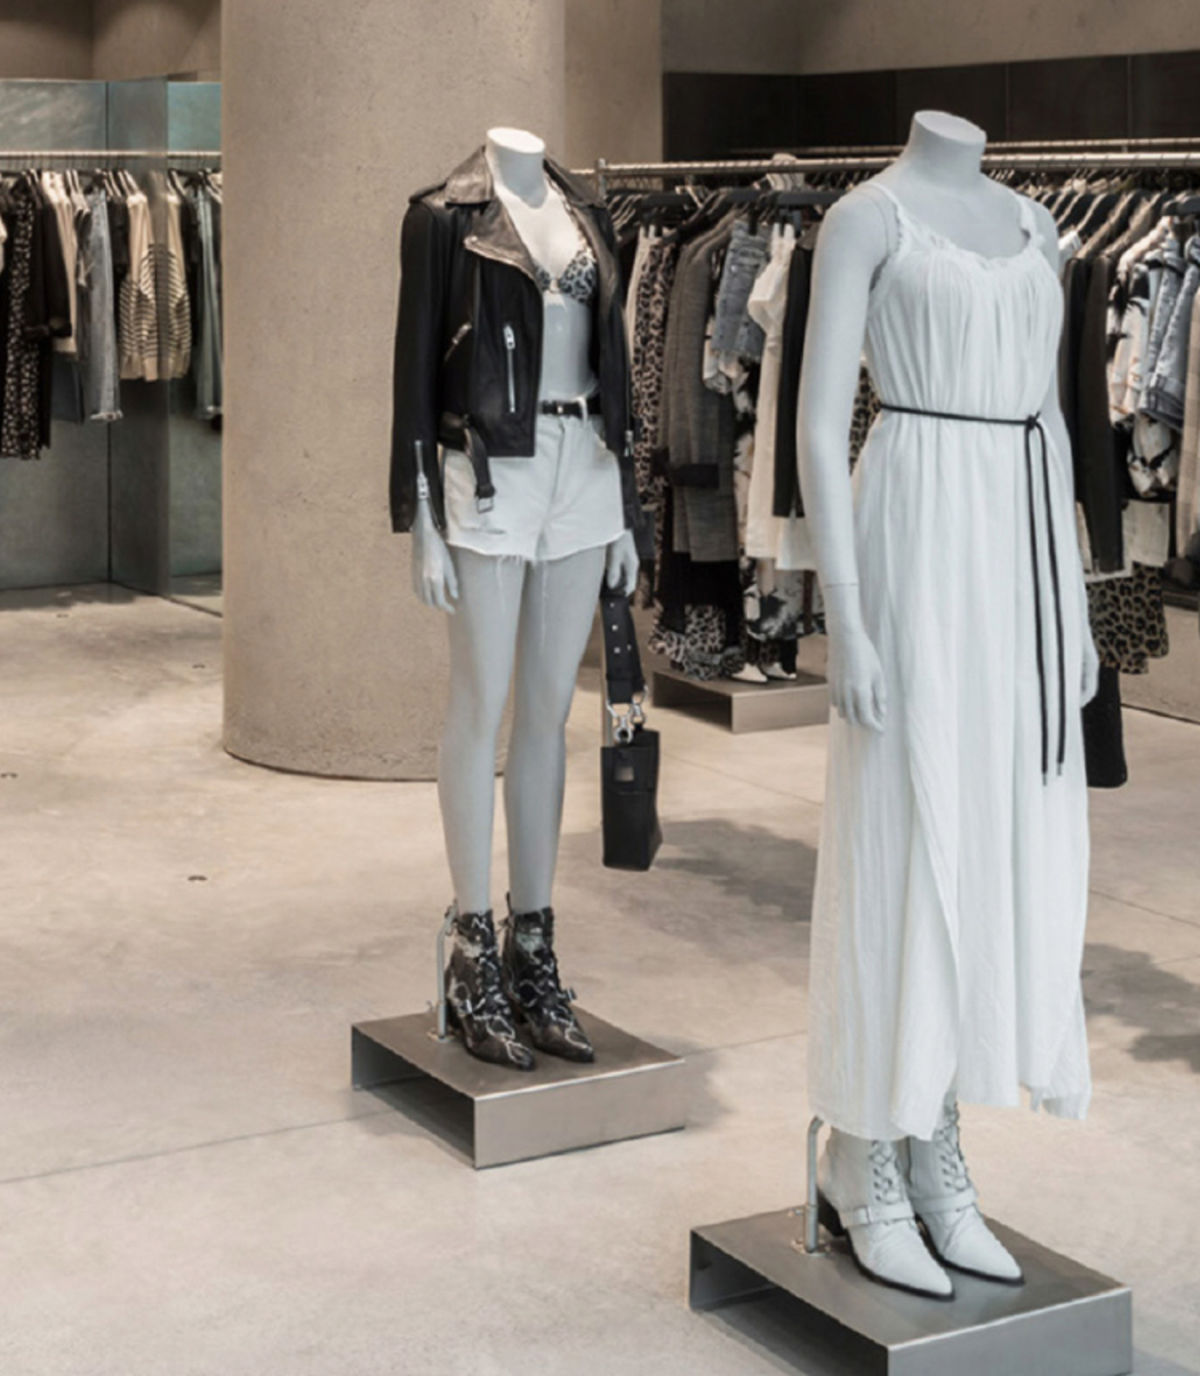 Two mannequins inside a store wearing items from our women's collection.